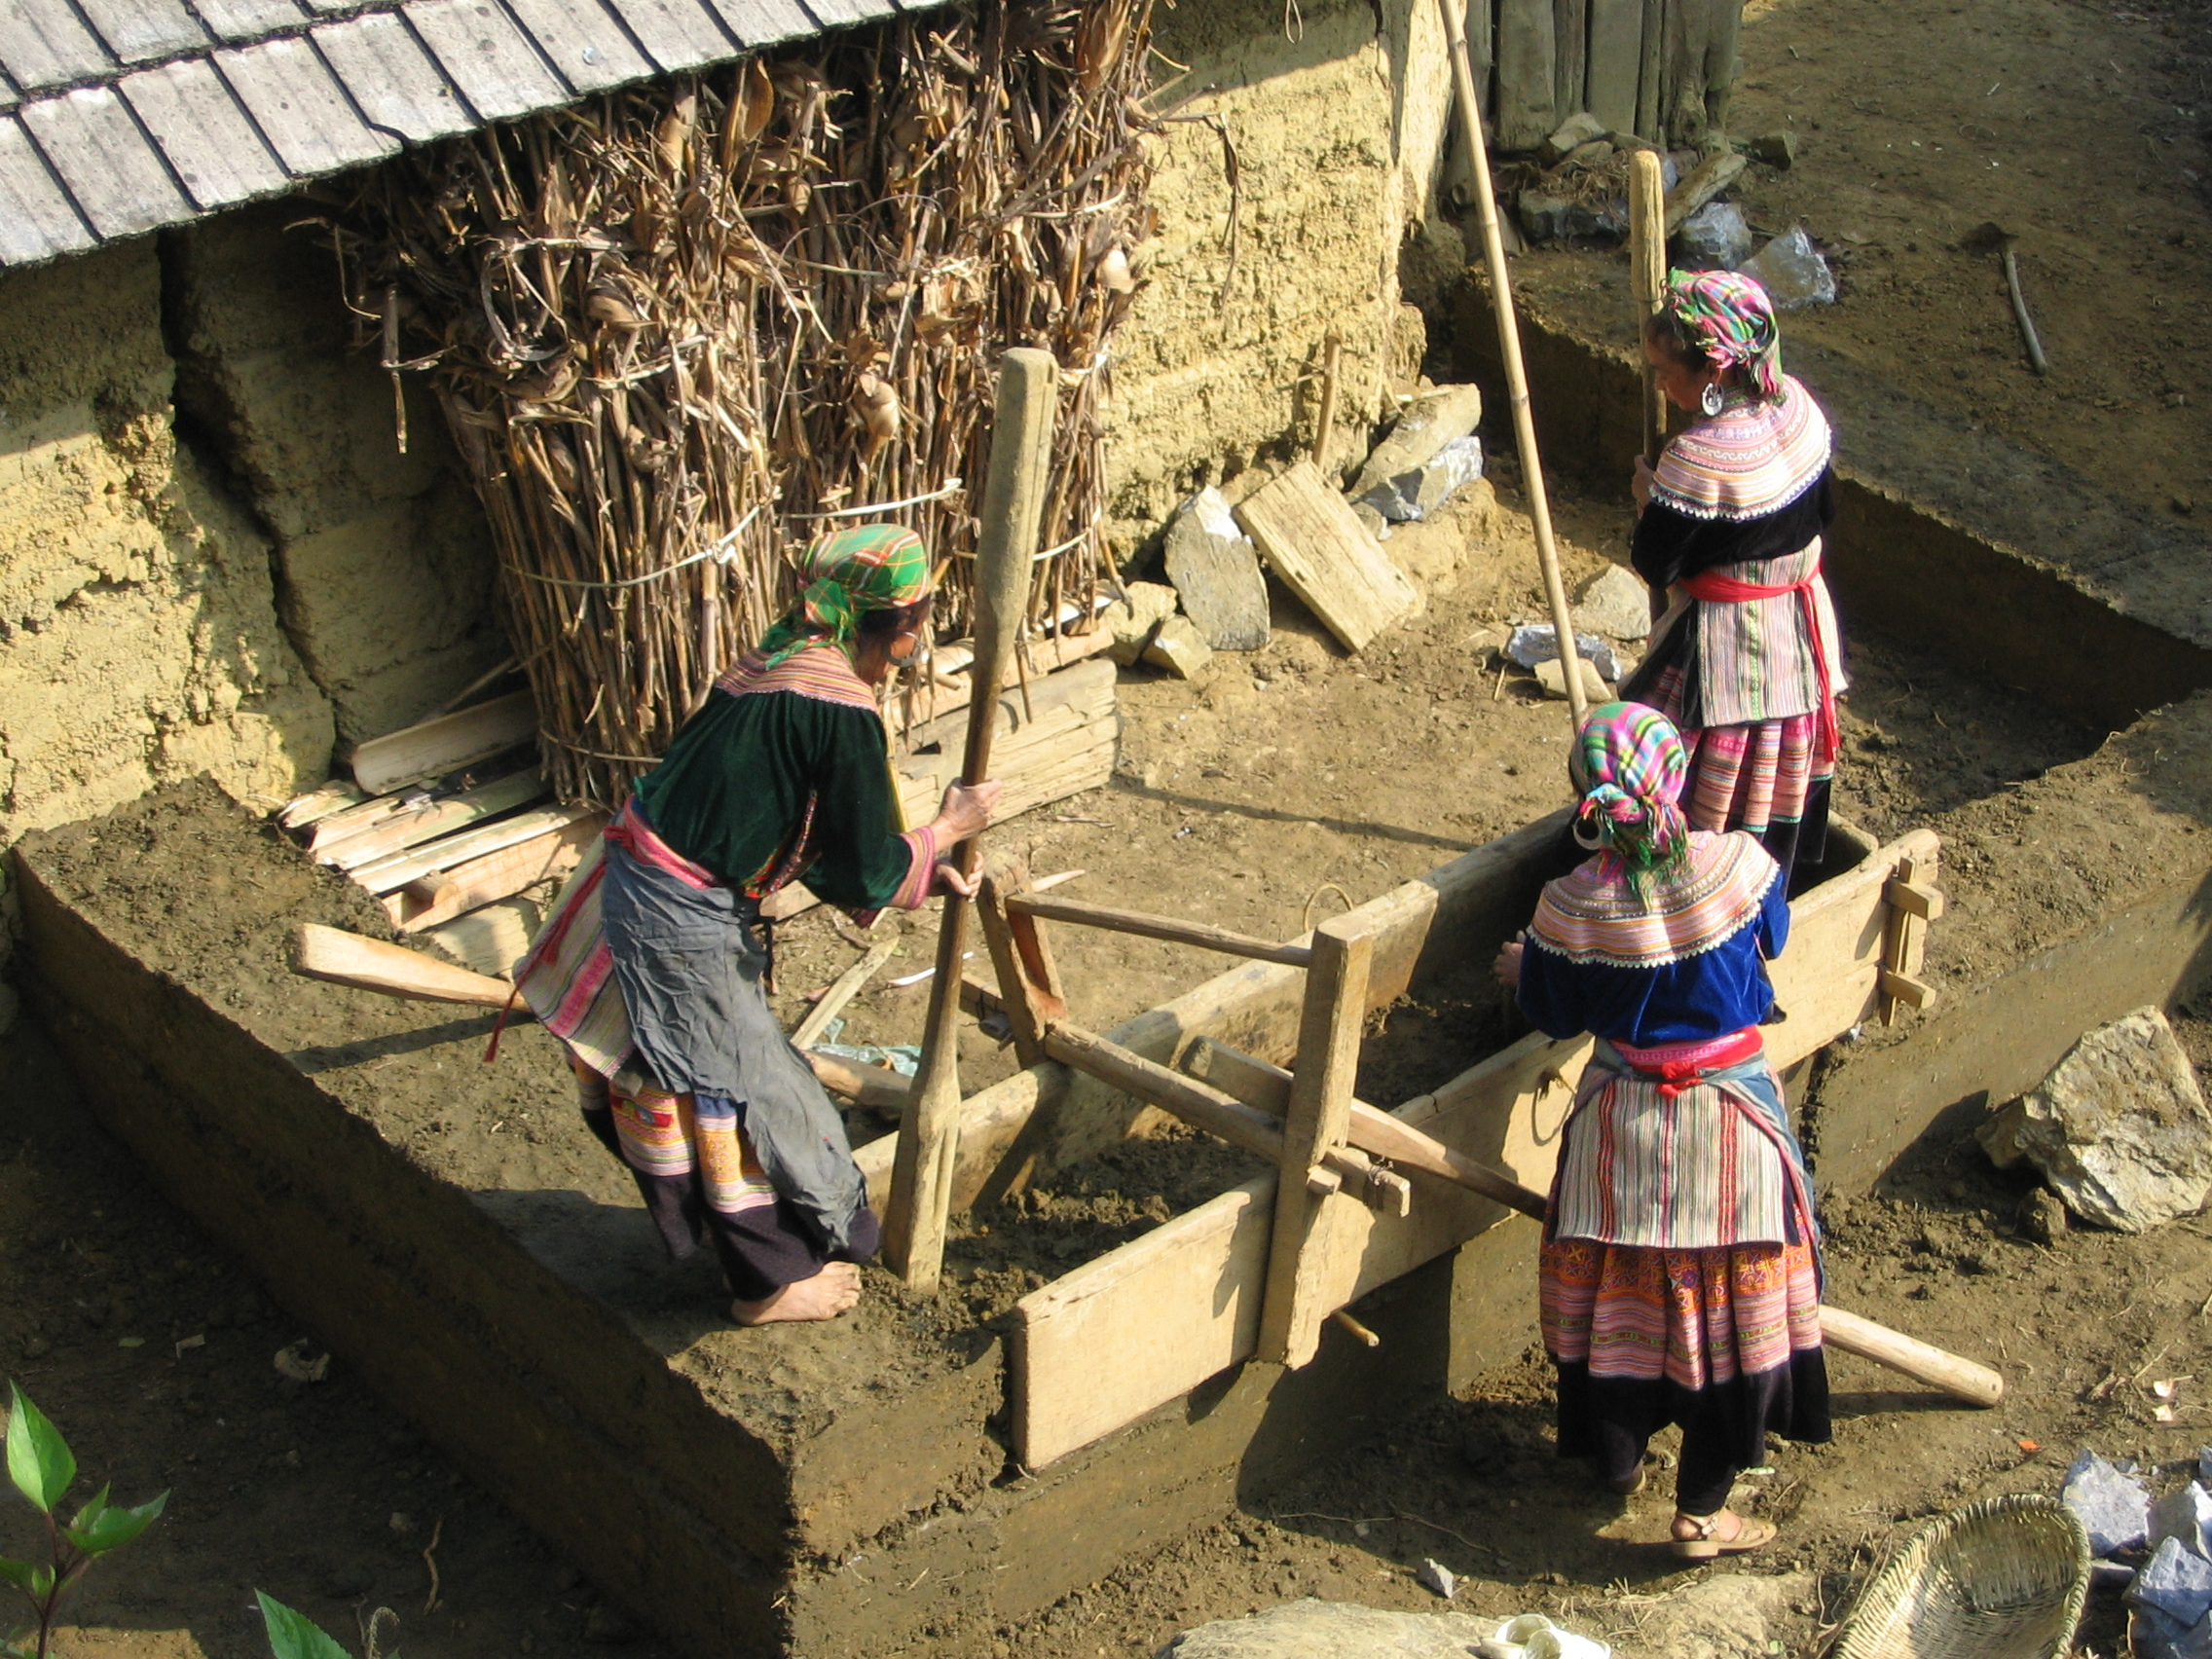 Photo: Flower Hmong woman building a house. Wikimedia Commons. Uploaded by AlfredBoc.